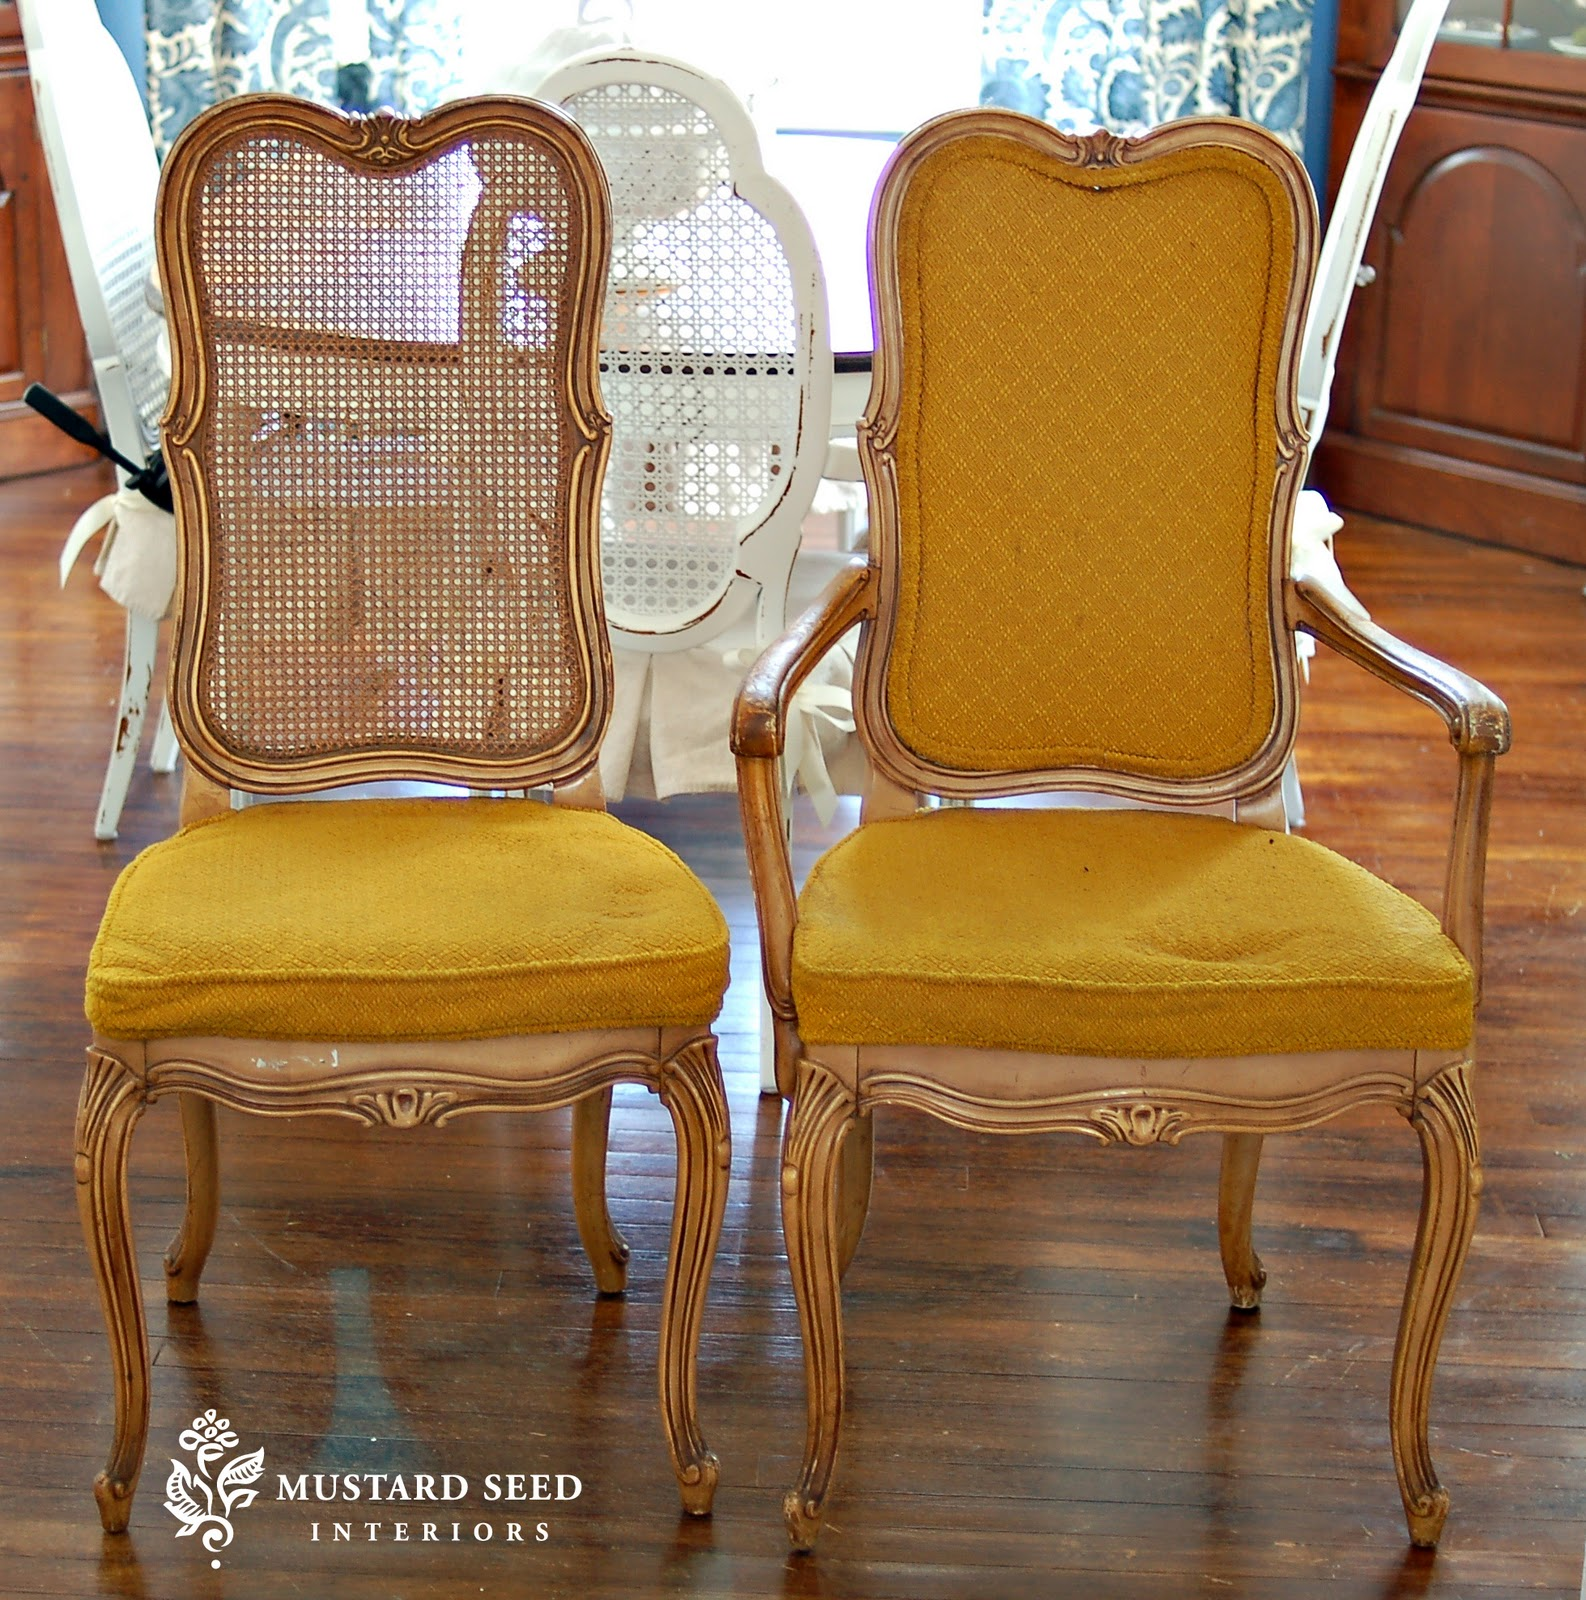 How To Replace Cane Back Chair With Fabric Eames Rocker Five French Chairs Miss Mustard Seed